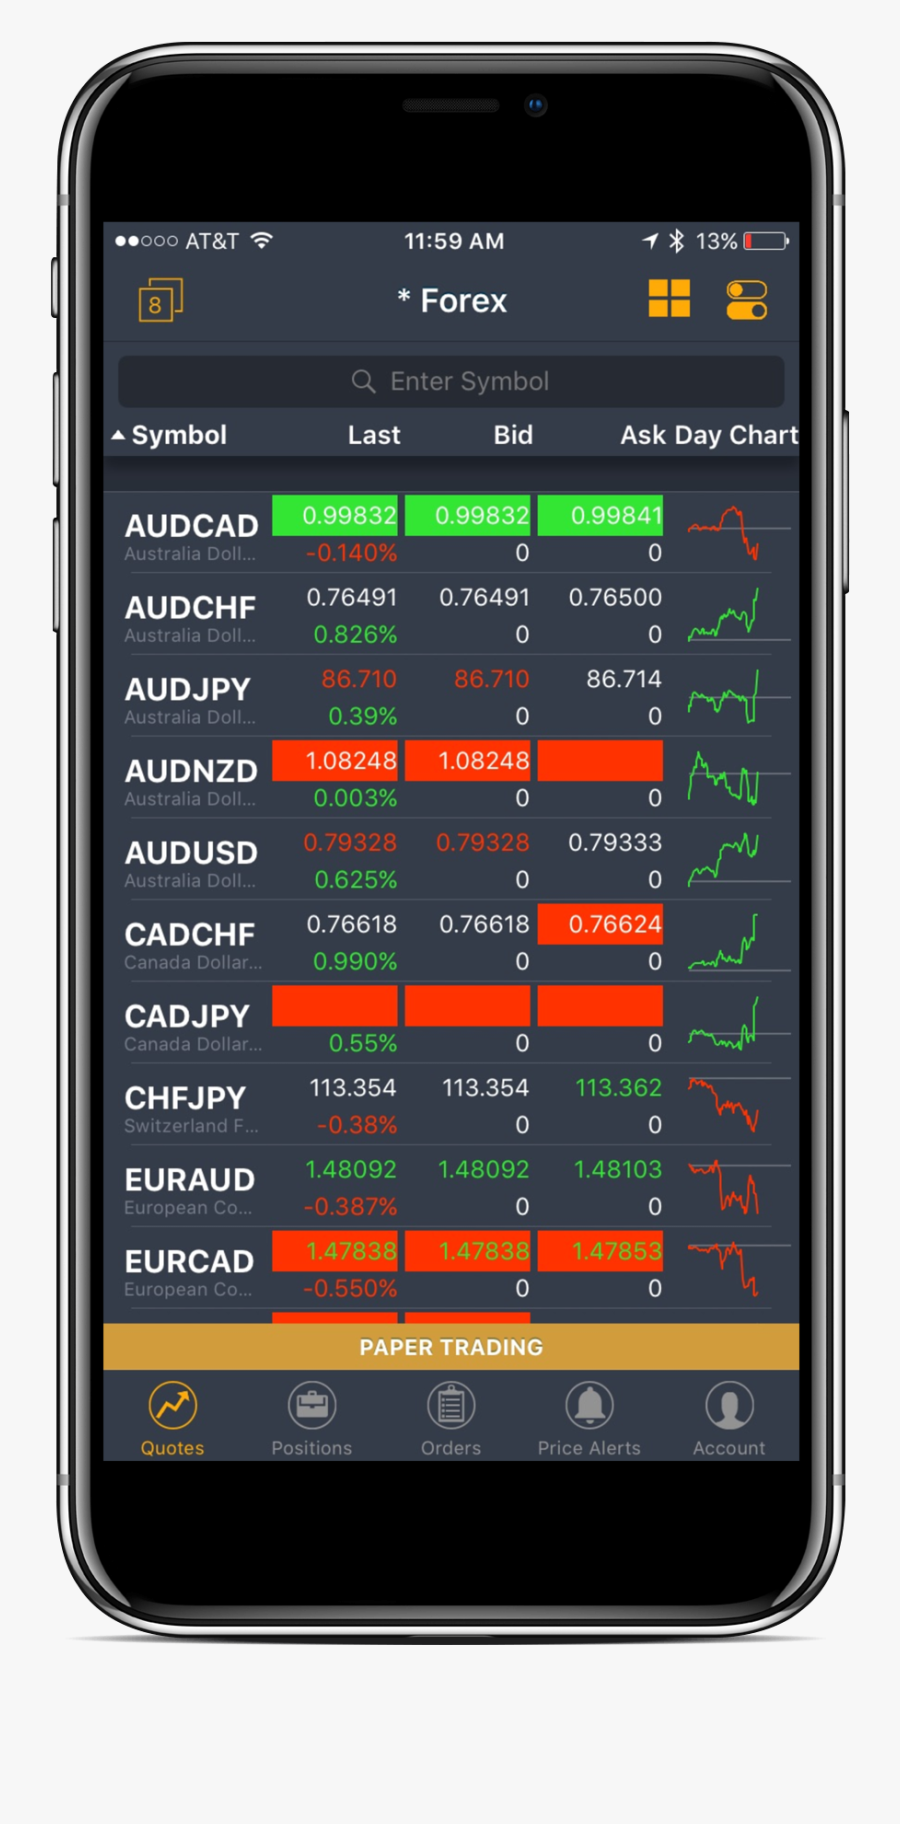 Mobile Streaming Quotes - Forex Mobile Trading, Transparent Clipart